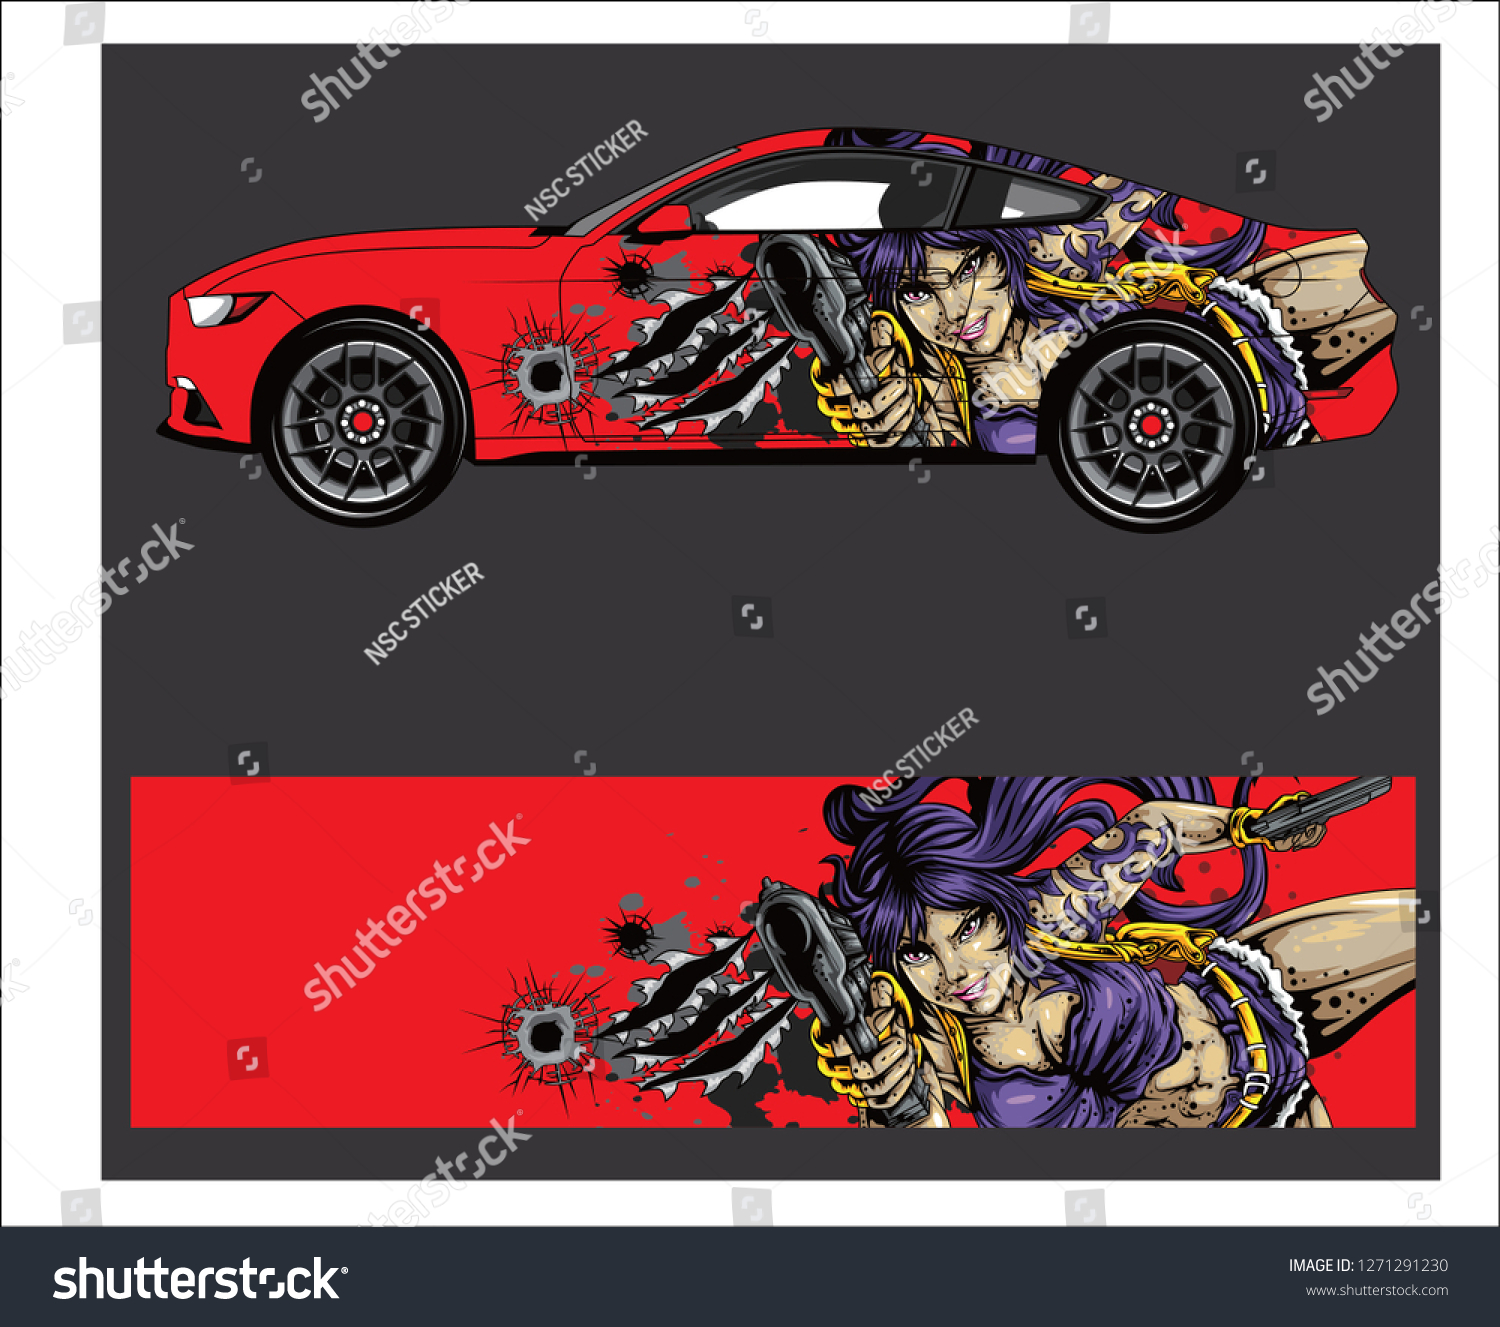 Car and vehicle anime graphic kit background for wrap and vinyl sticker